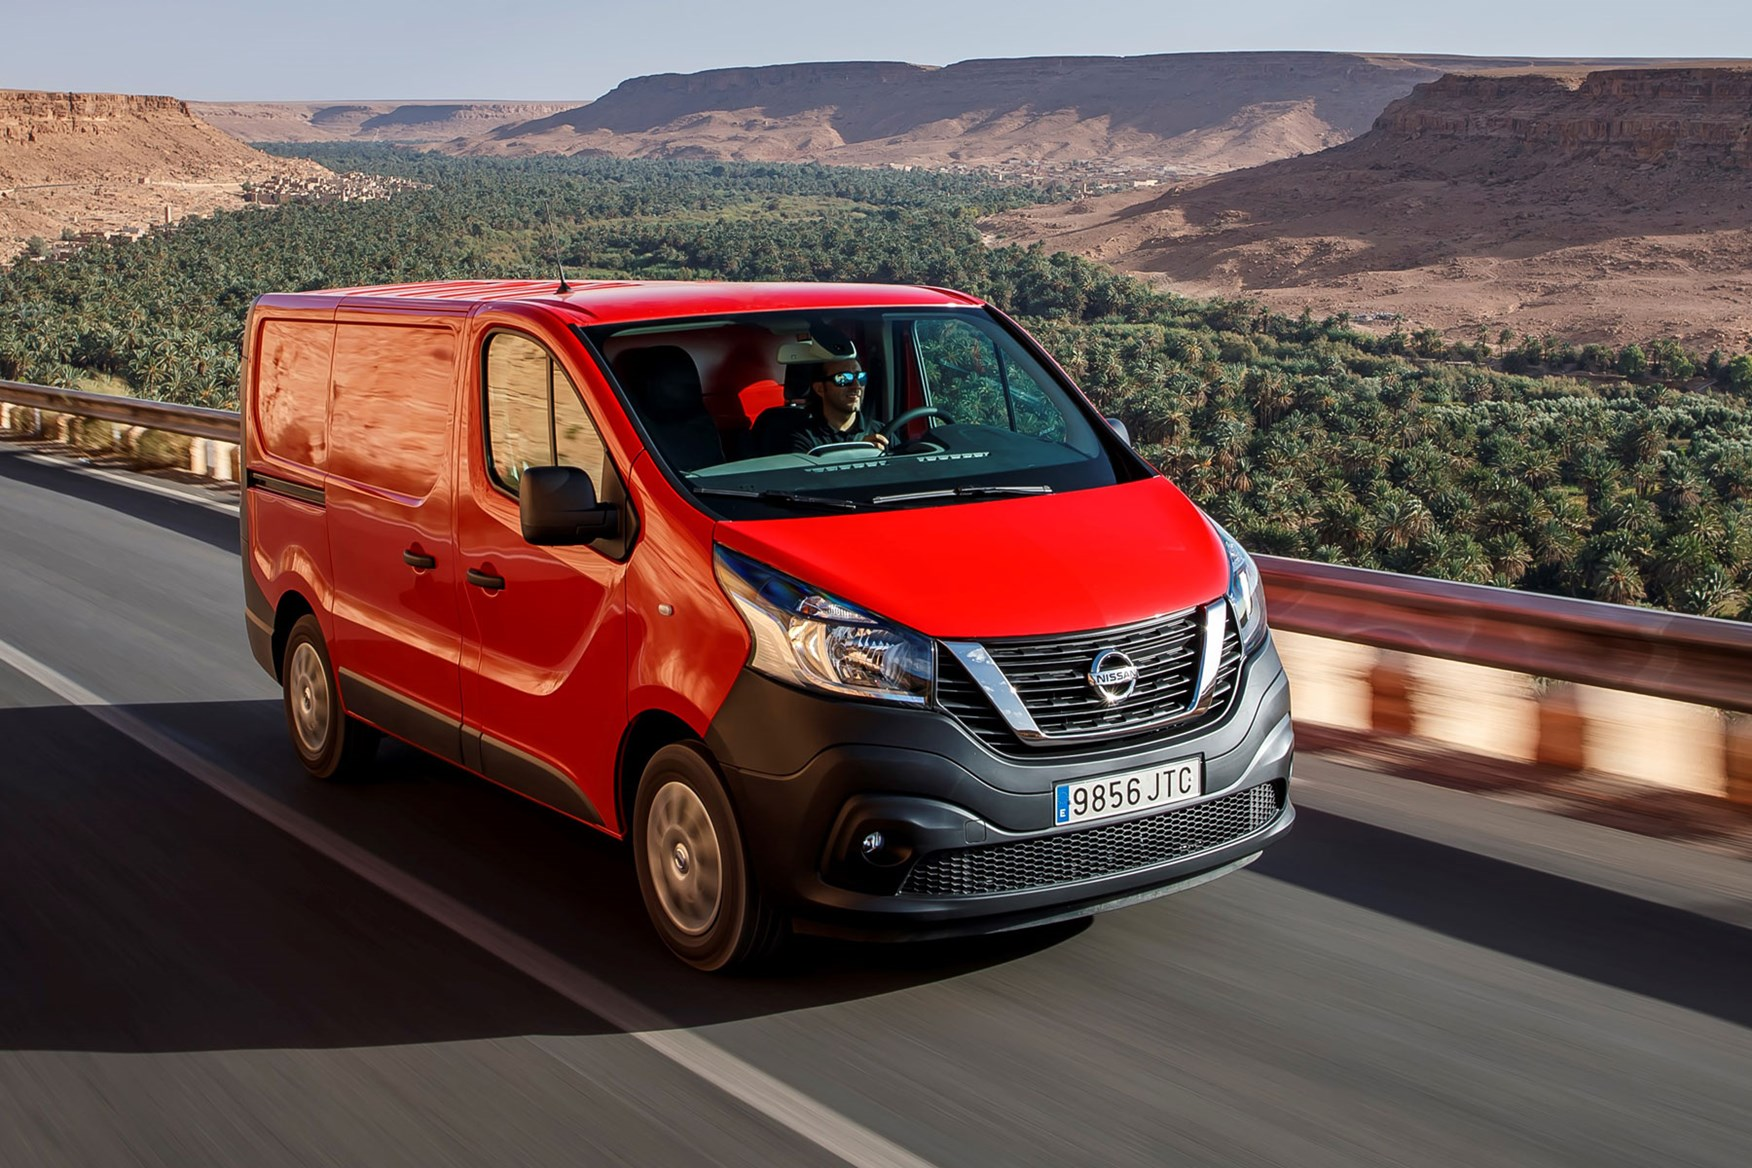 Nissan NV300 - red, driving in Morocco, 2016